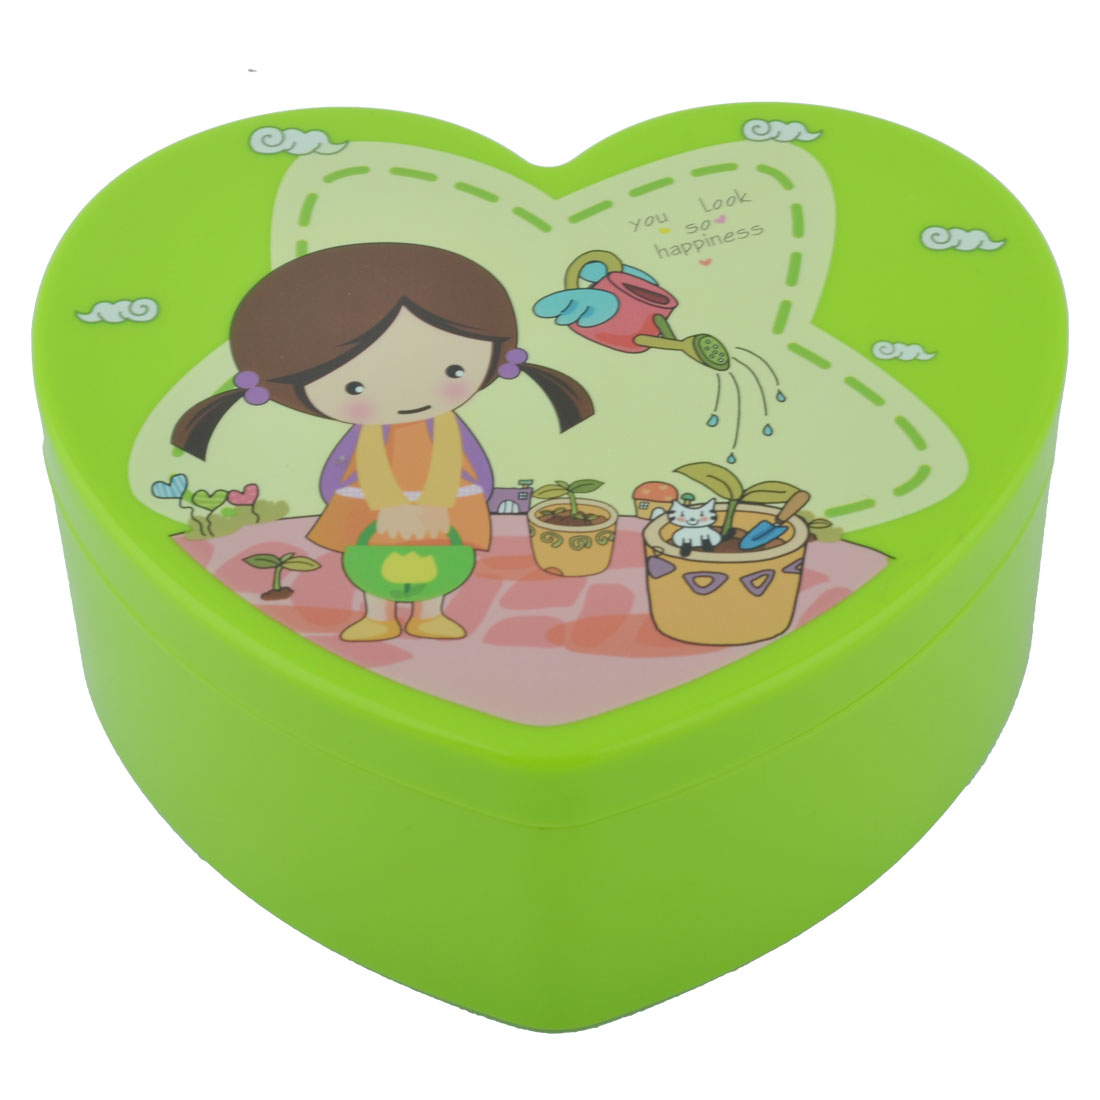 Lady Plastic Heart Shape Cosmetic Organizer Makeup Jewelry Storage Box Case Green